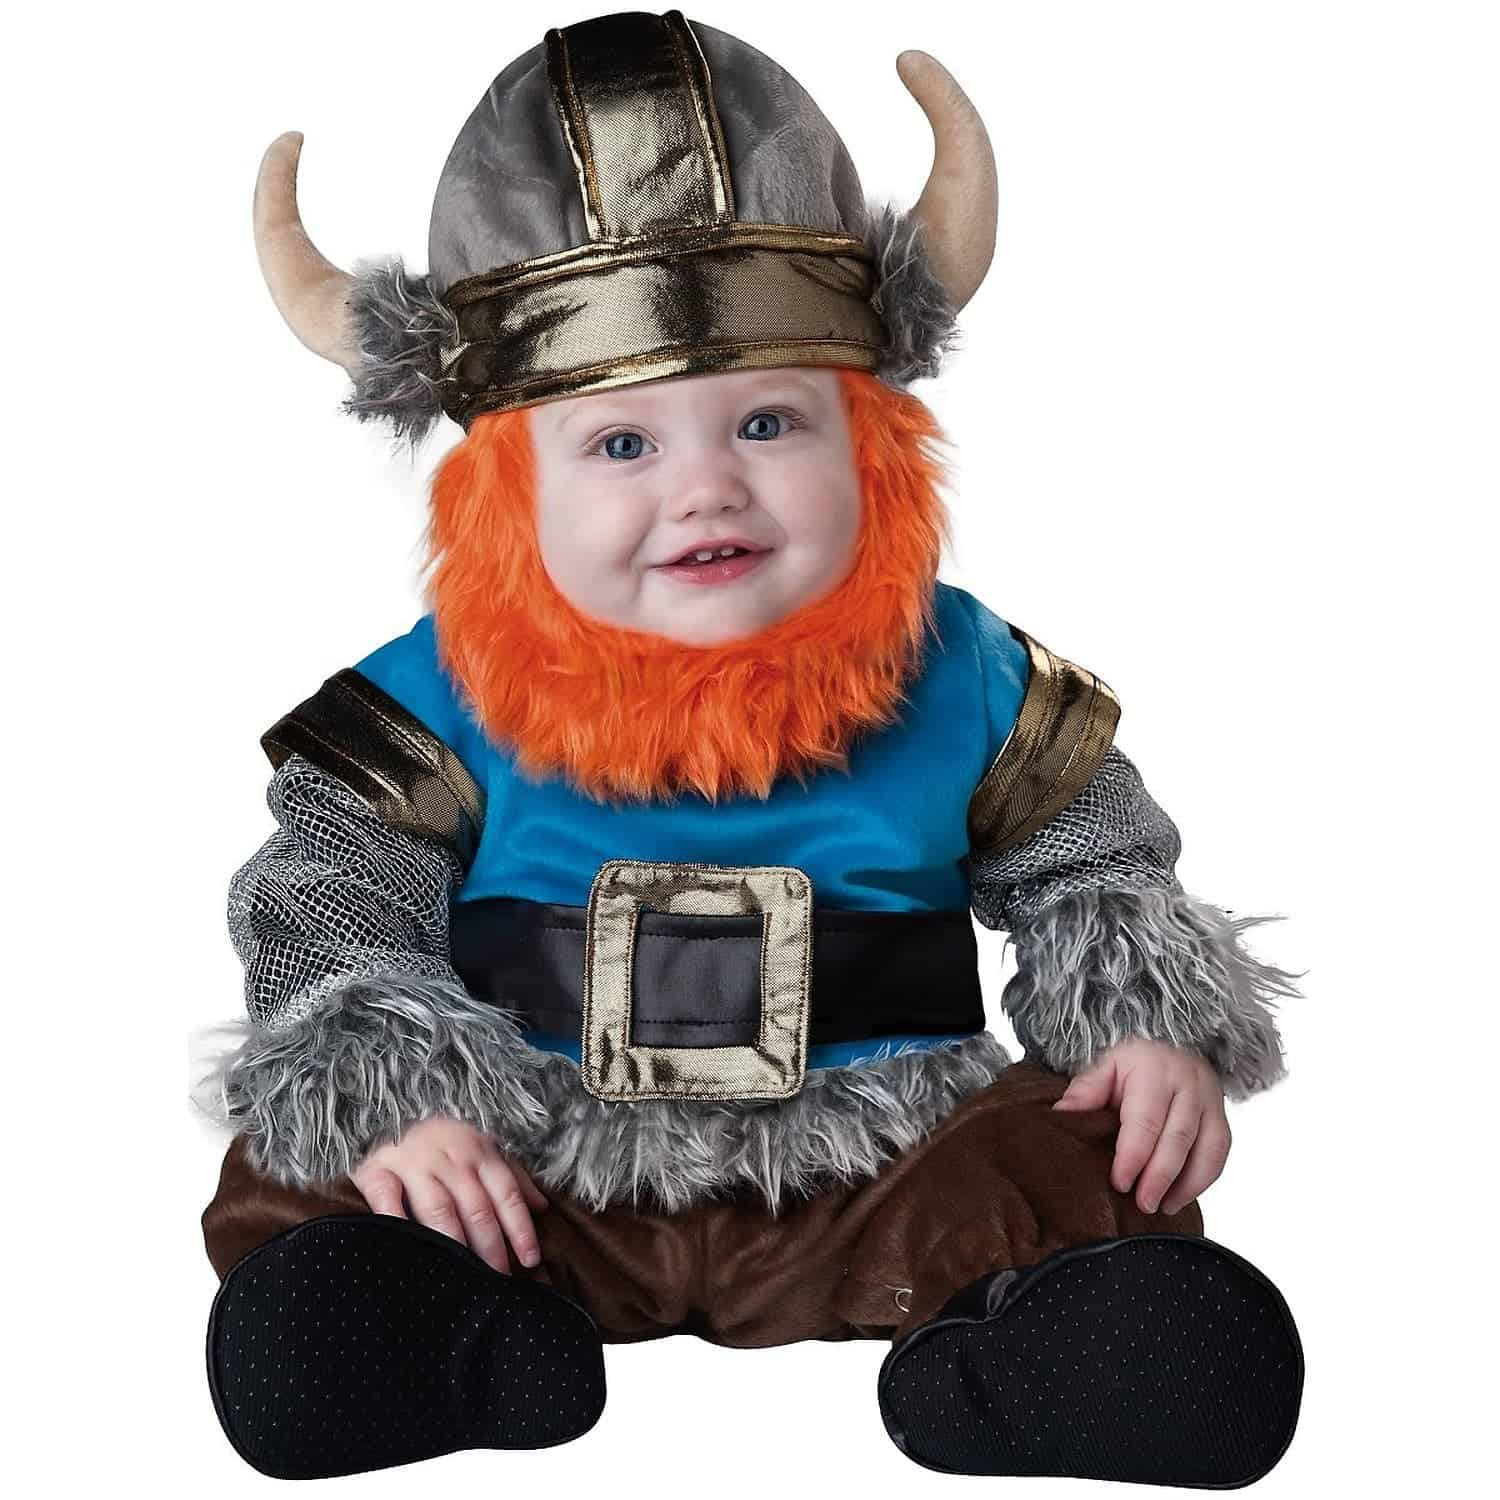 baby viking halloween costume - Toddler And Baby Halloween Costume Ideas